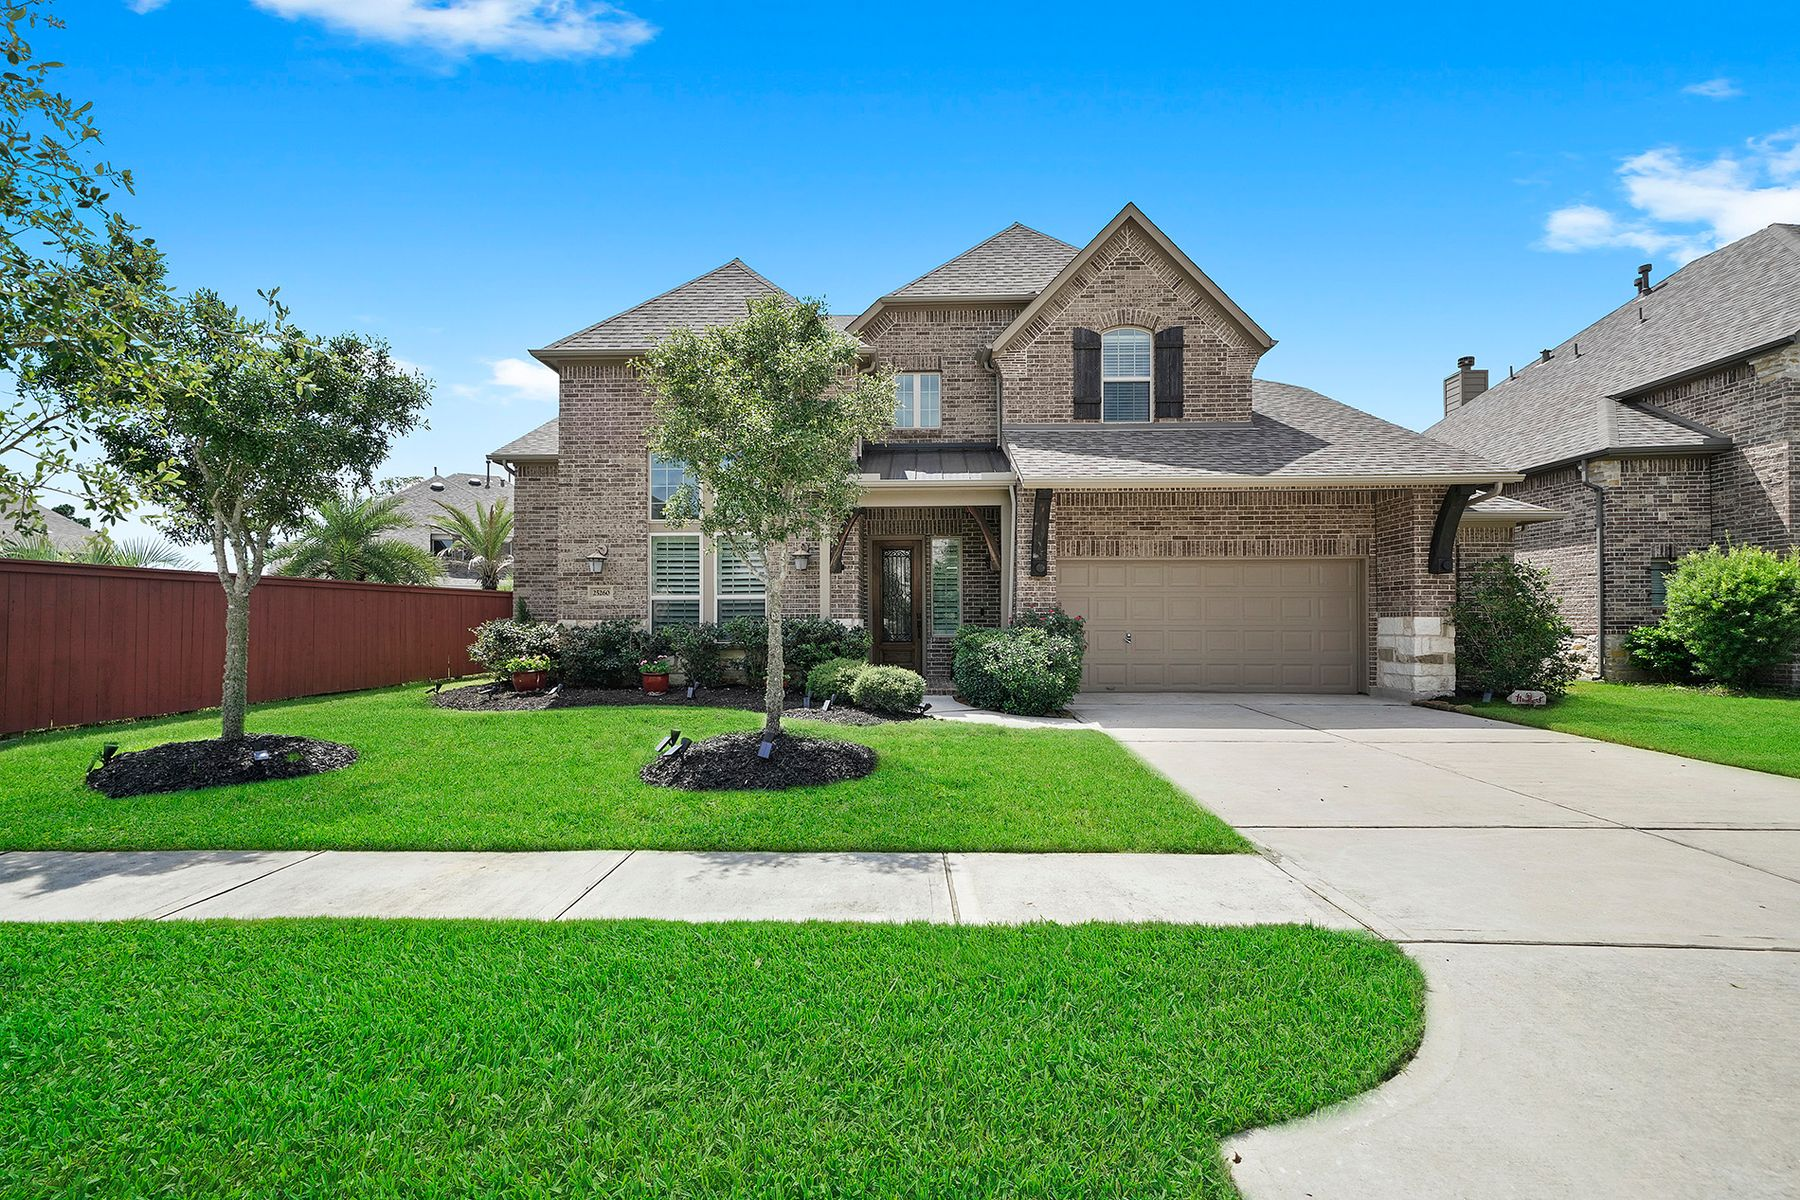 Single Family Homes for Sale at 25260 Forest Ledge Drive Porter, Texas 77365 United States